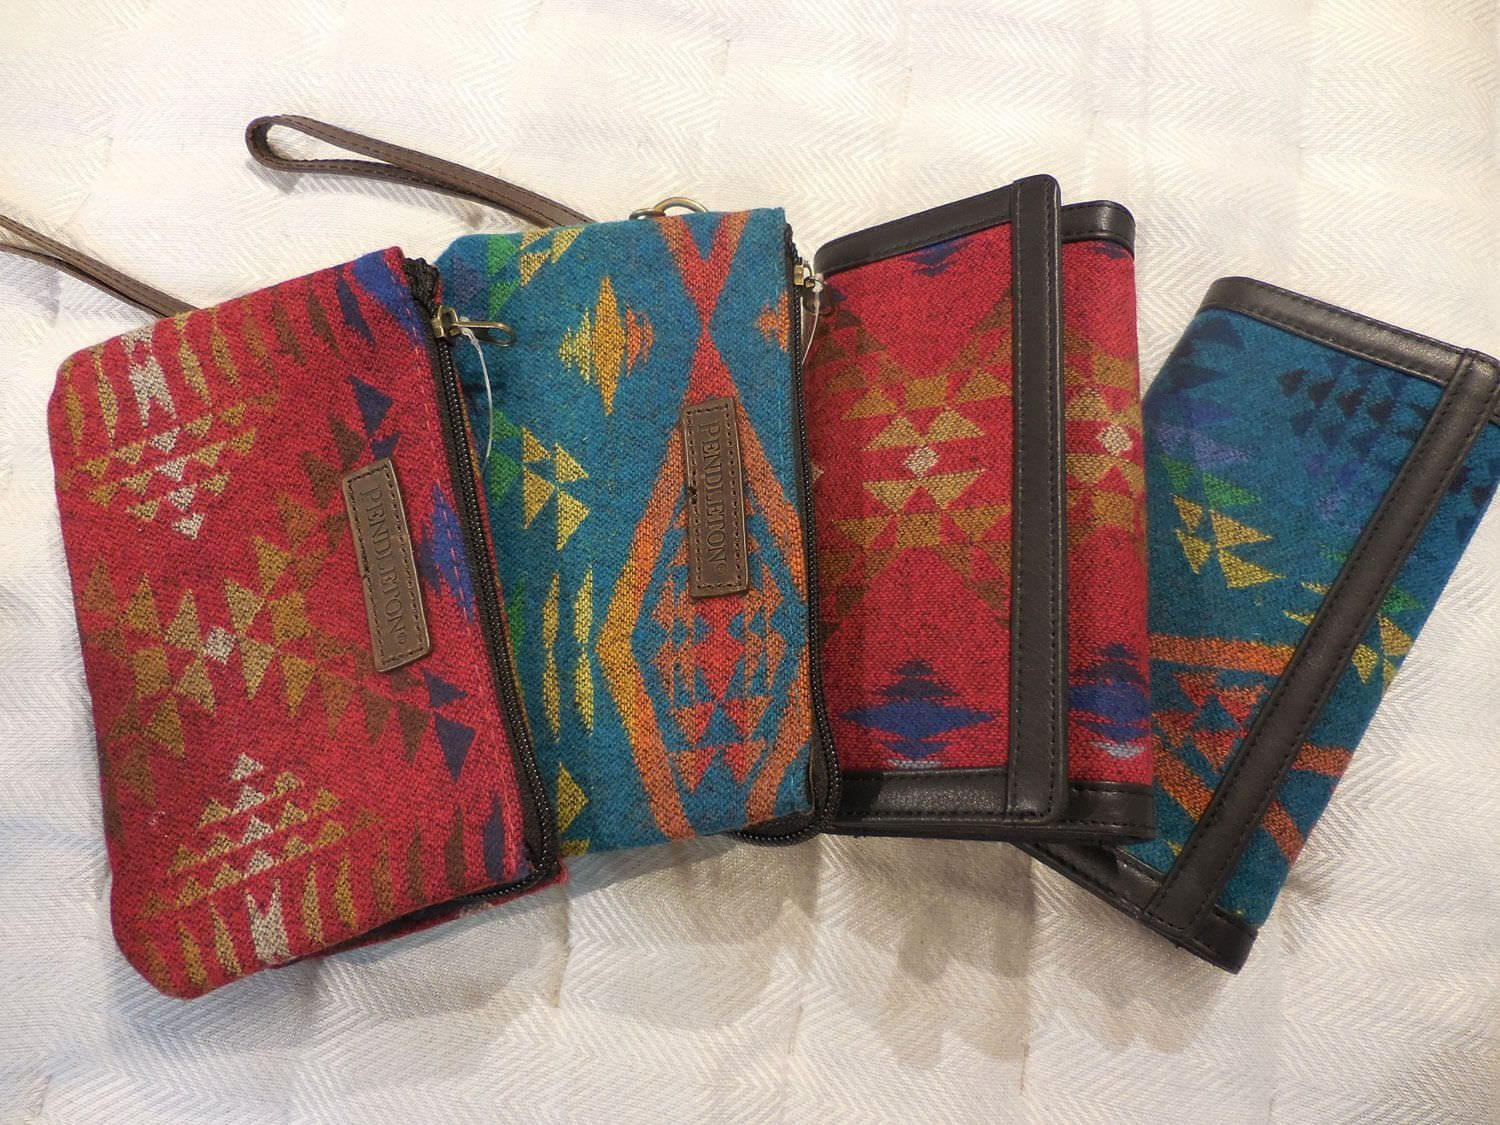 Pendleton Wristlets from Passionflower Design in Eugene, Oregon